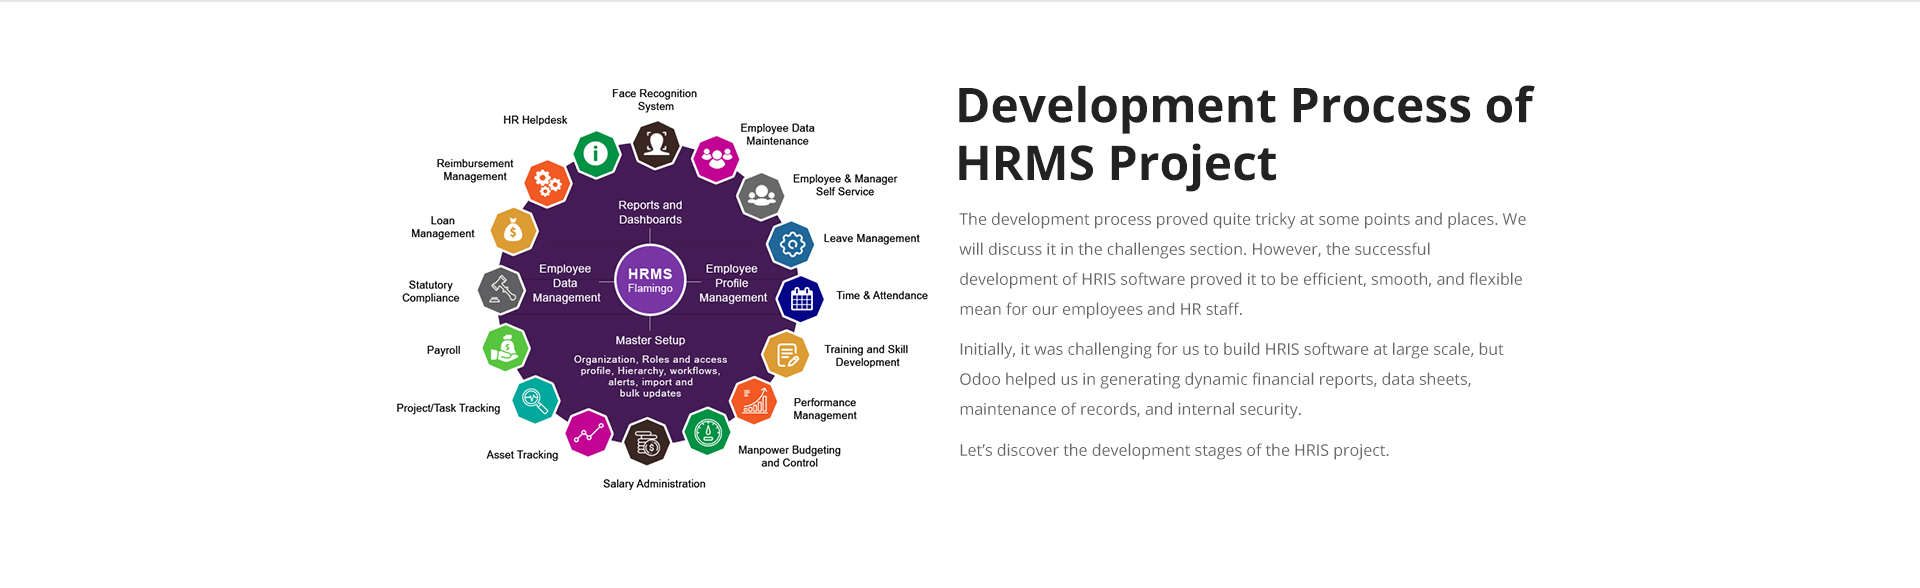 Development-process of HRM